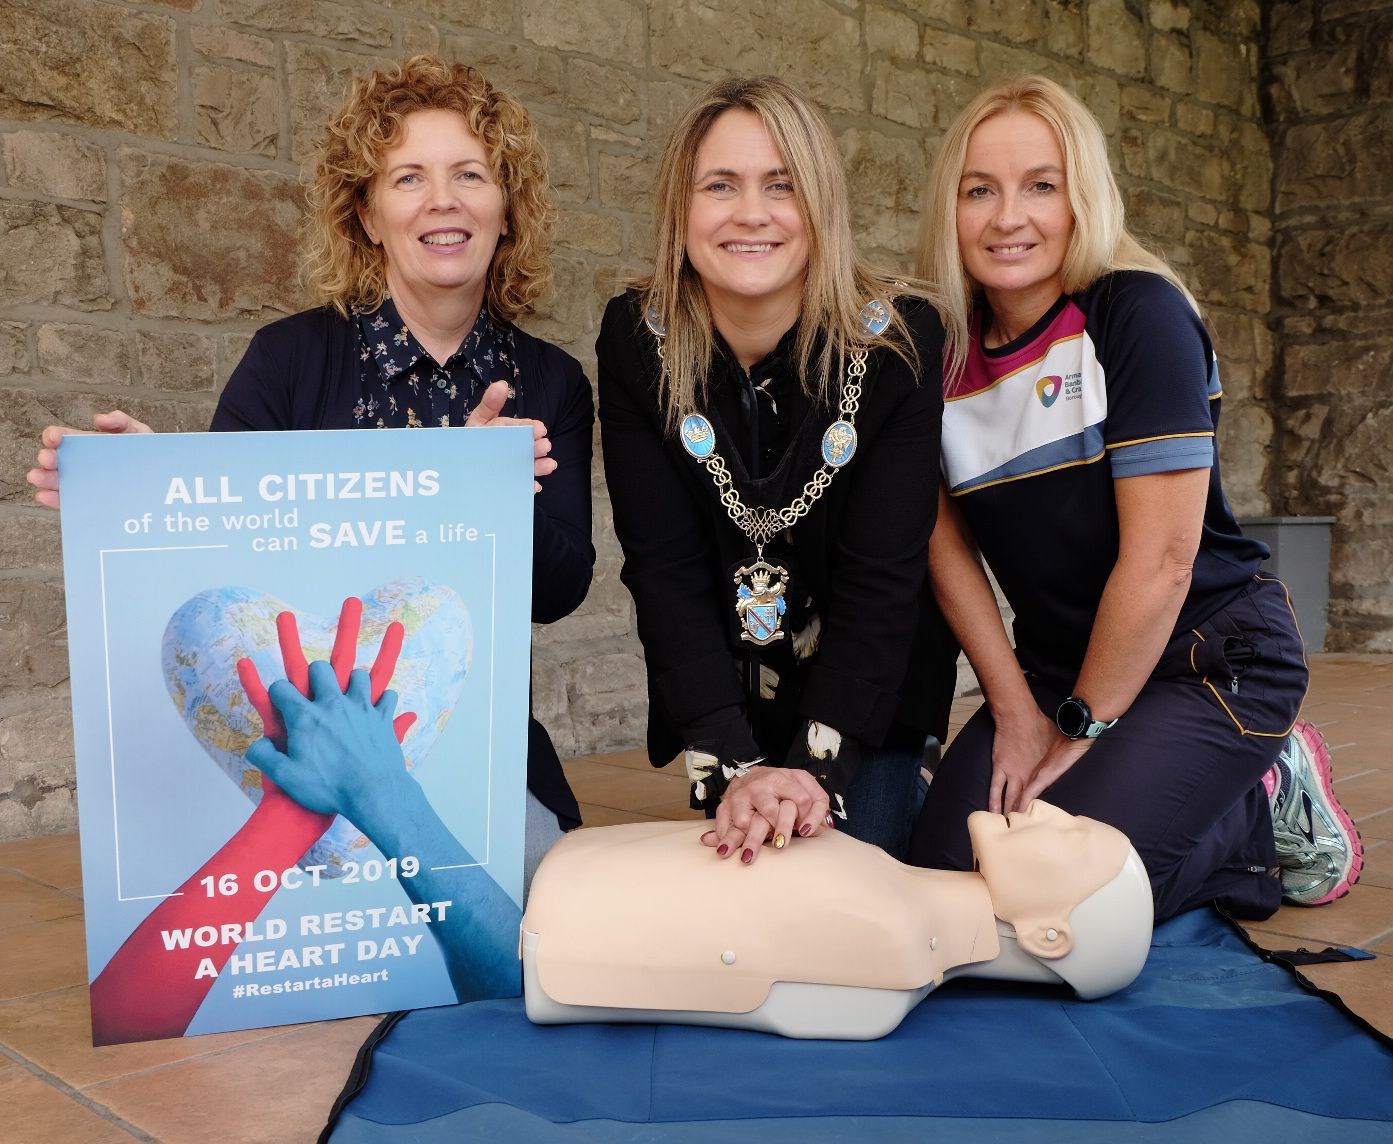 Lord Mayor calls on communities to learn vital life-saving skills